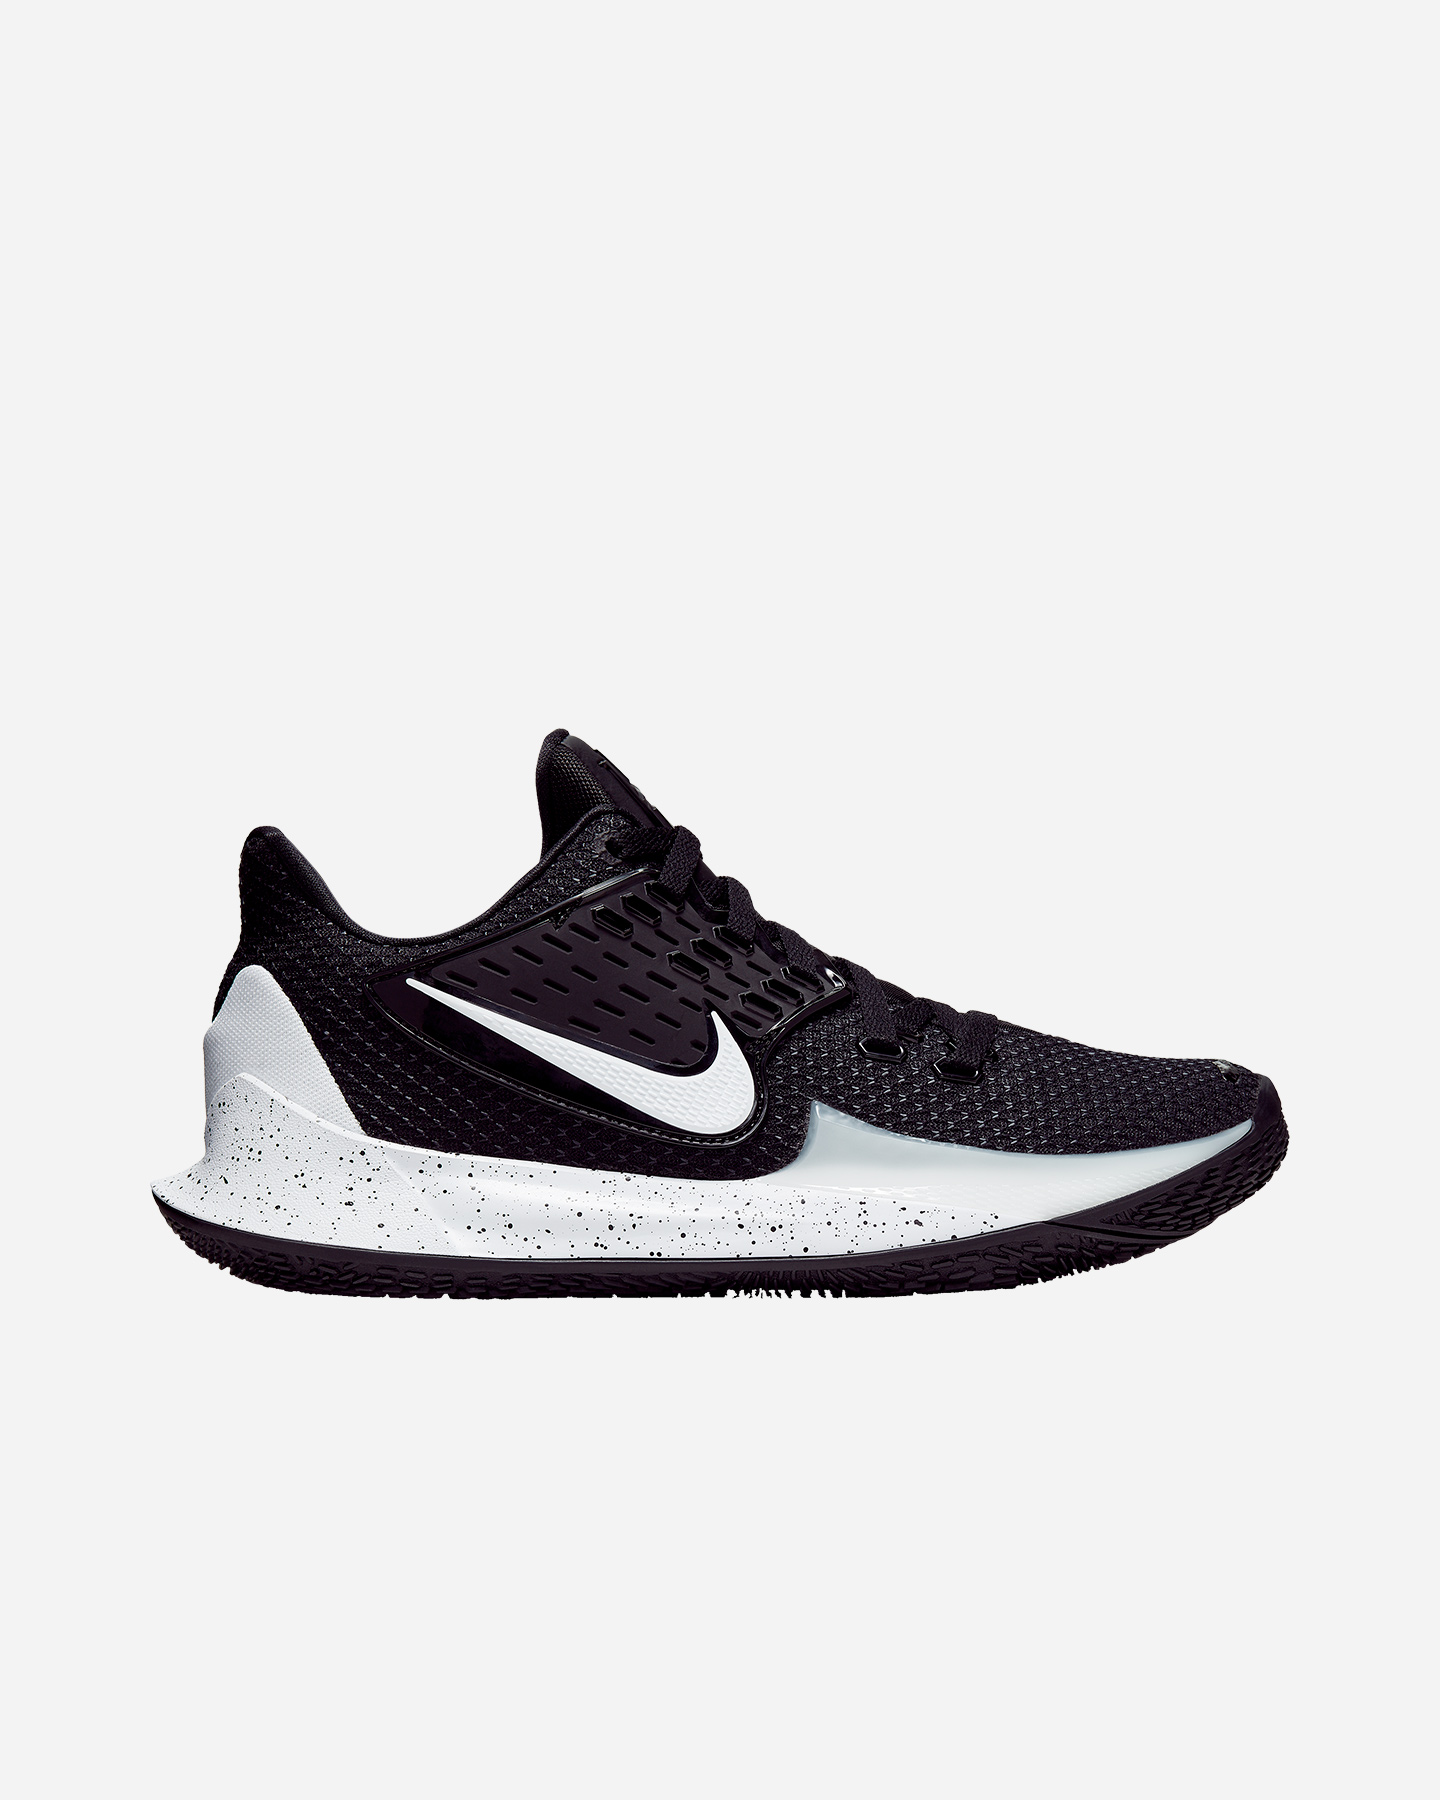 KYRIE LOW 2 M